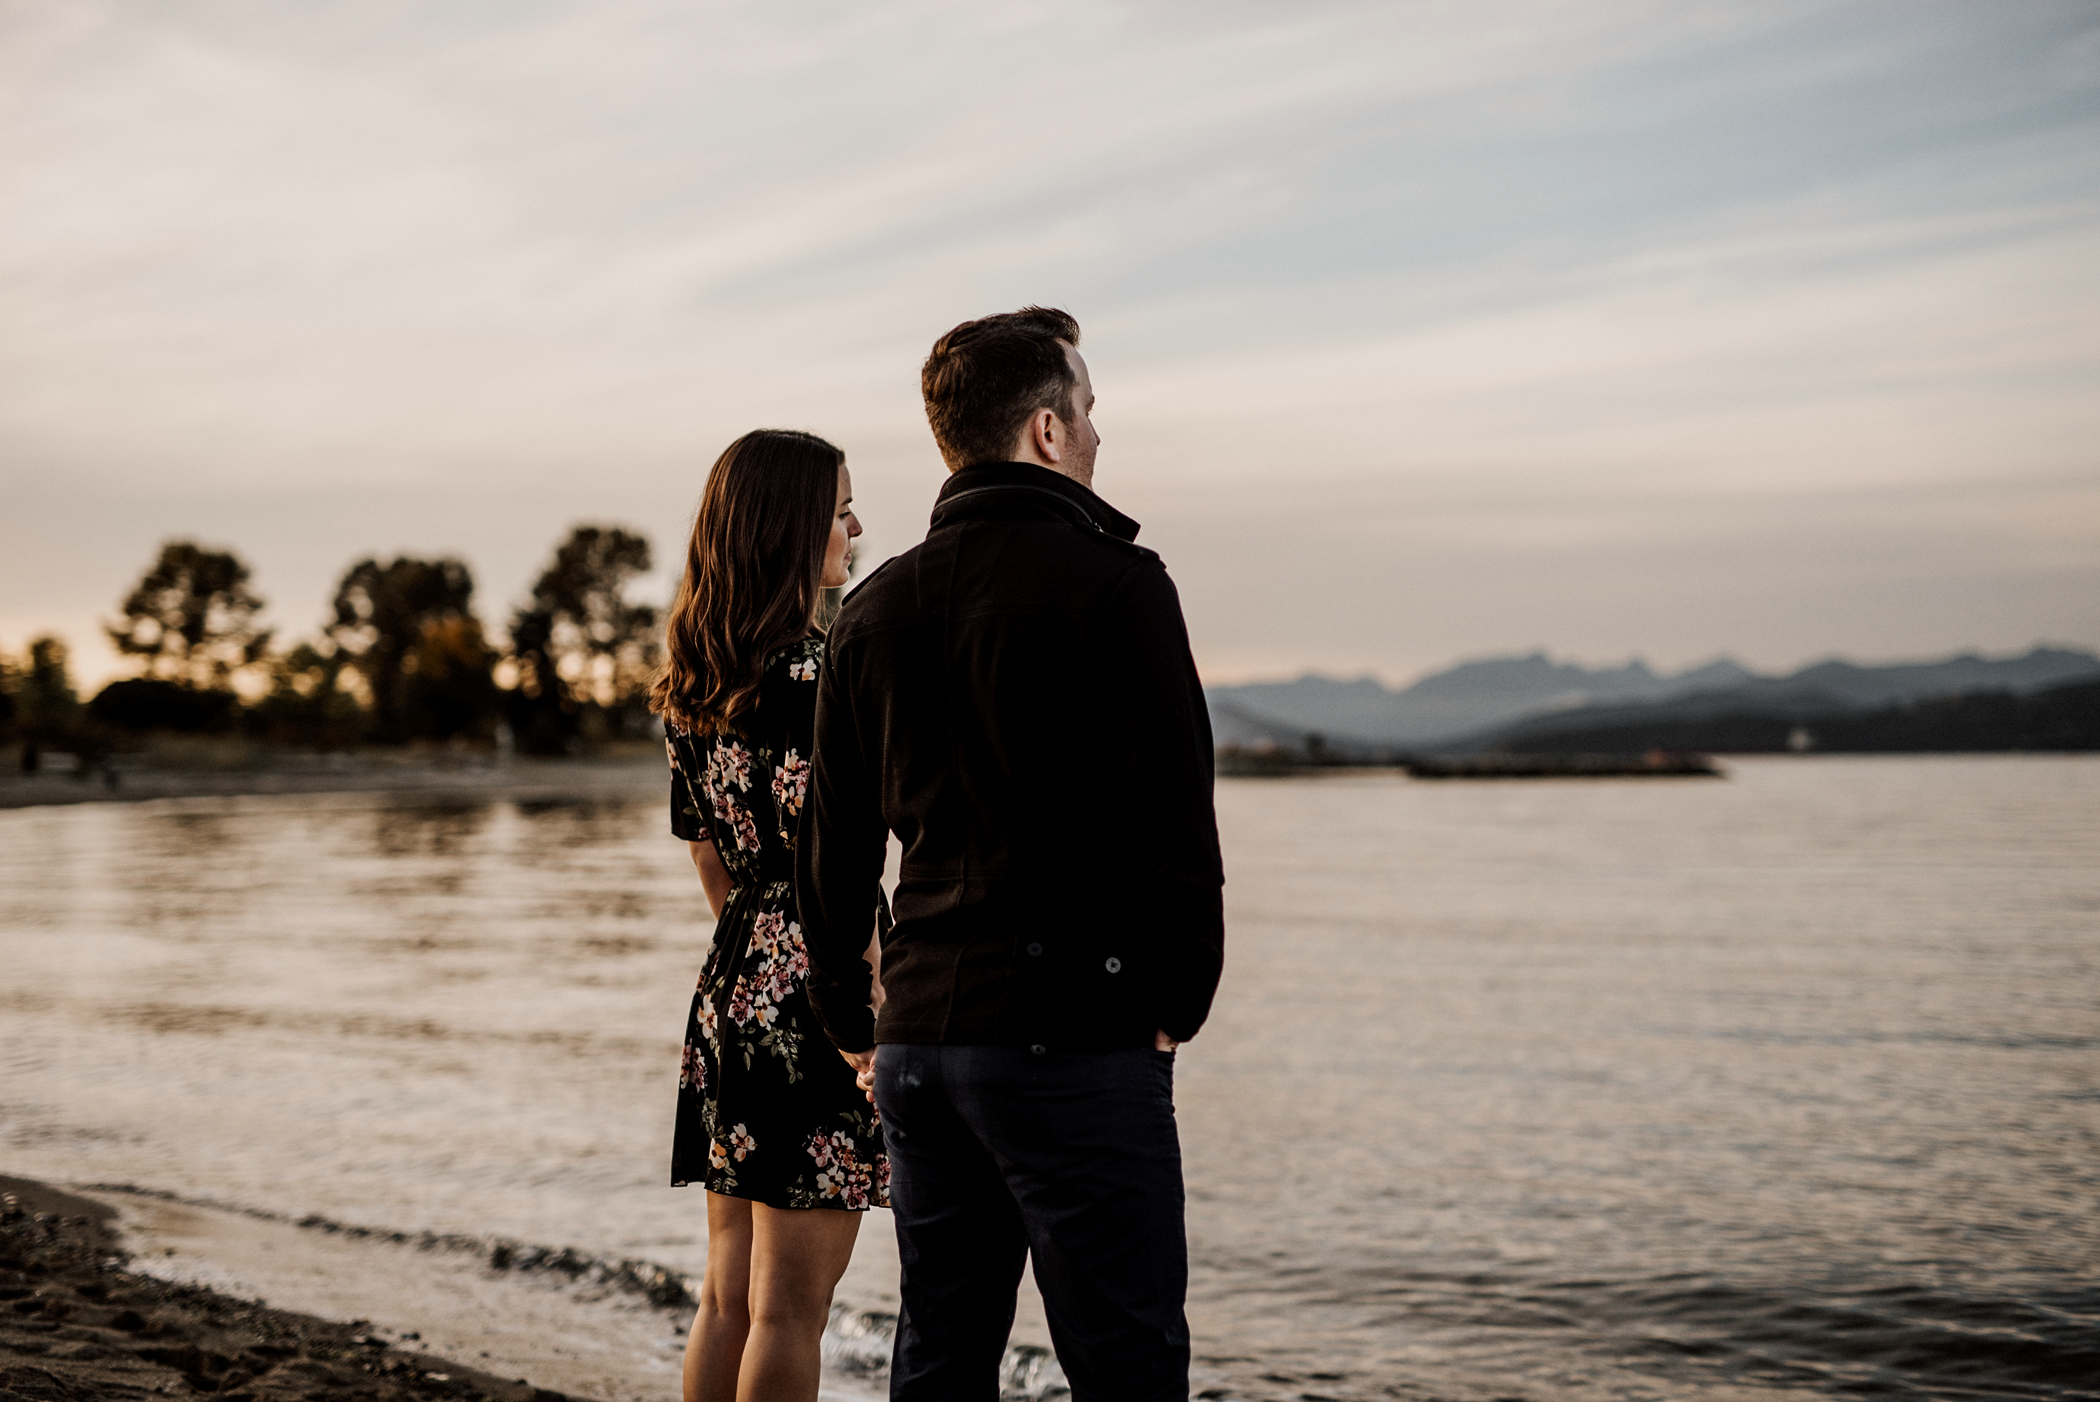 024-kaoverii-silva-CJ-prewedding-vancouver-photography-blog.png